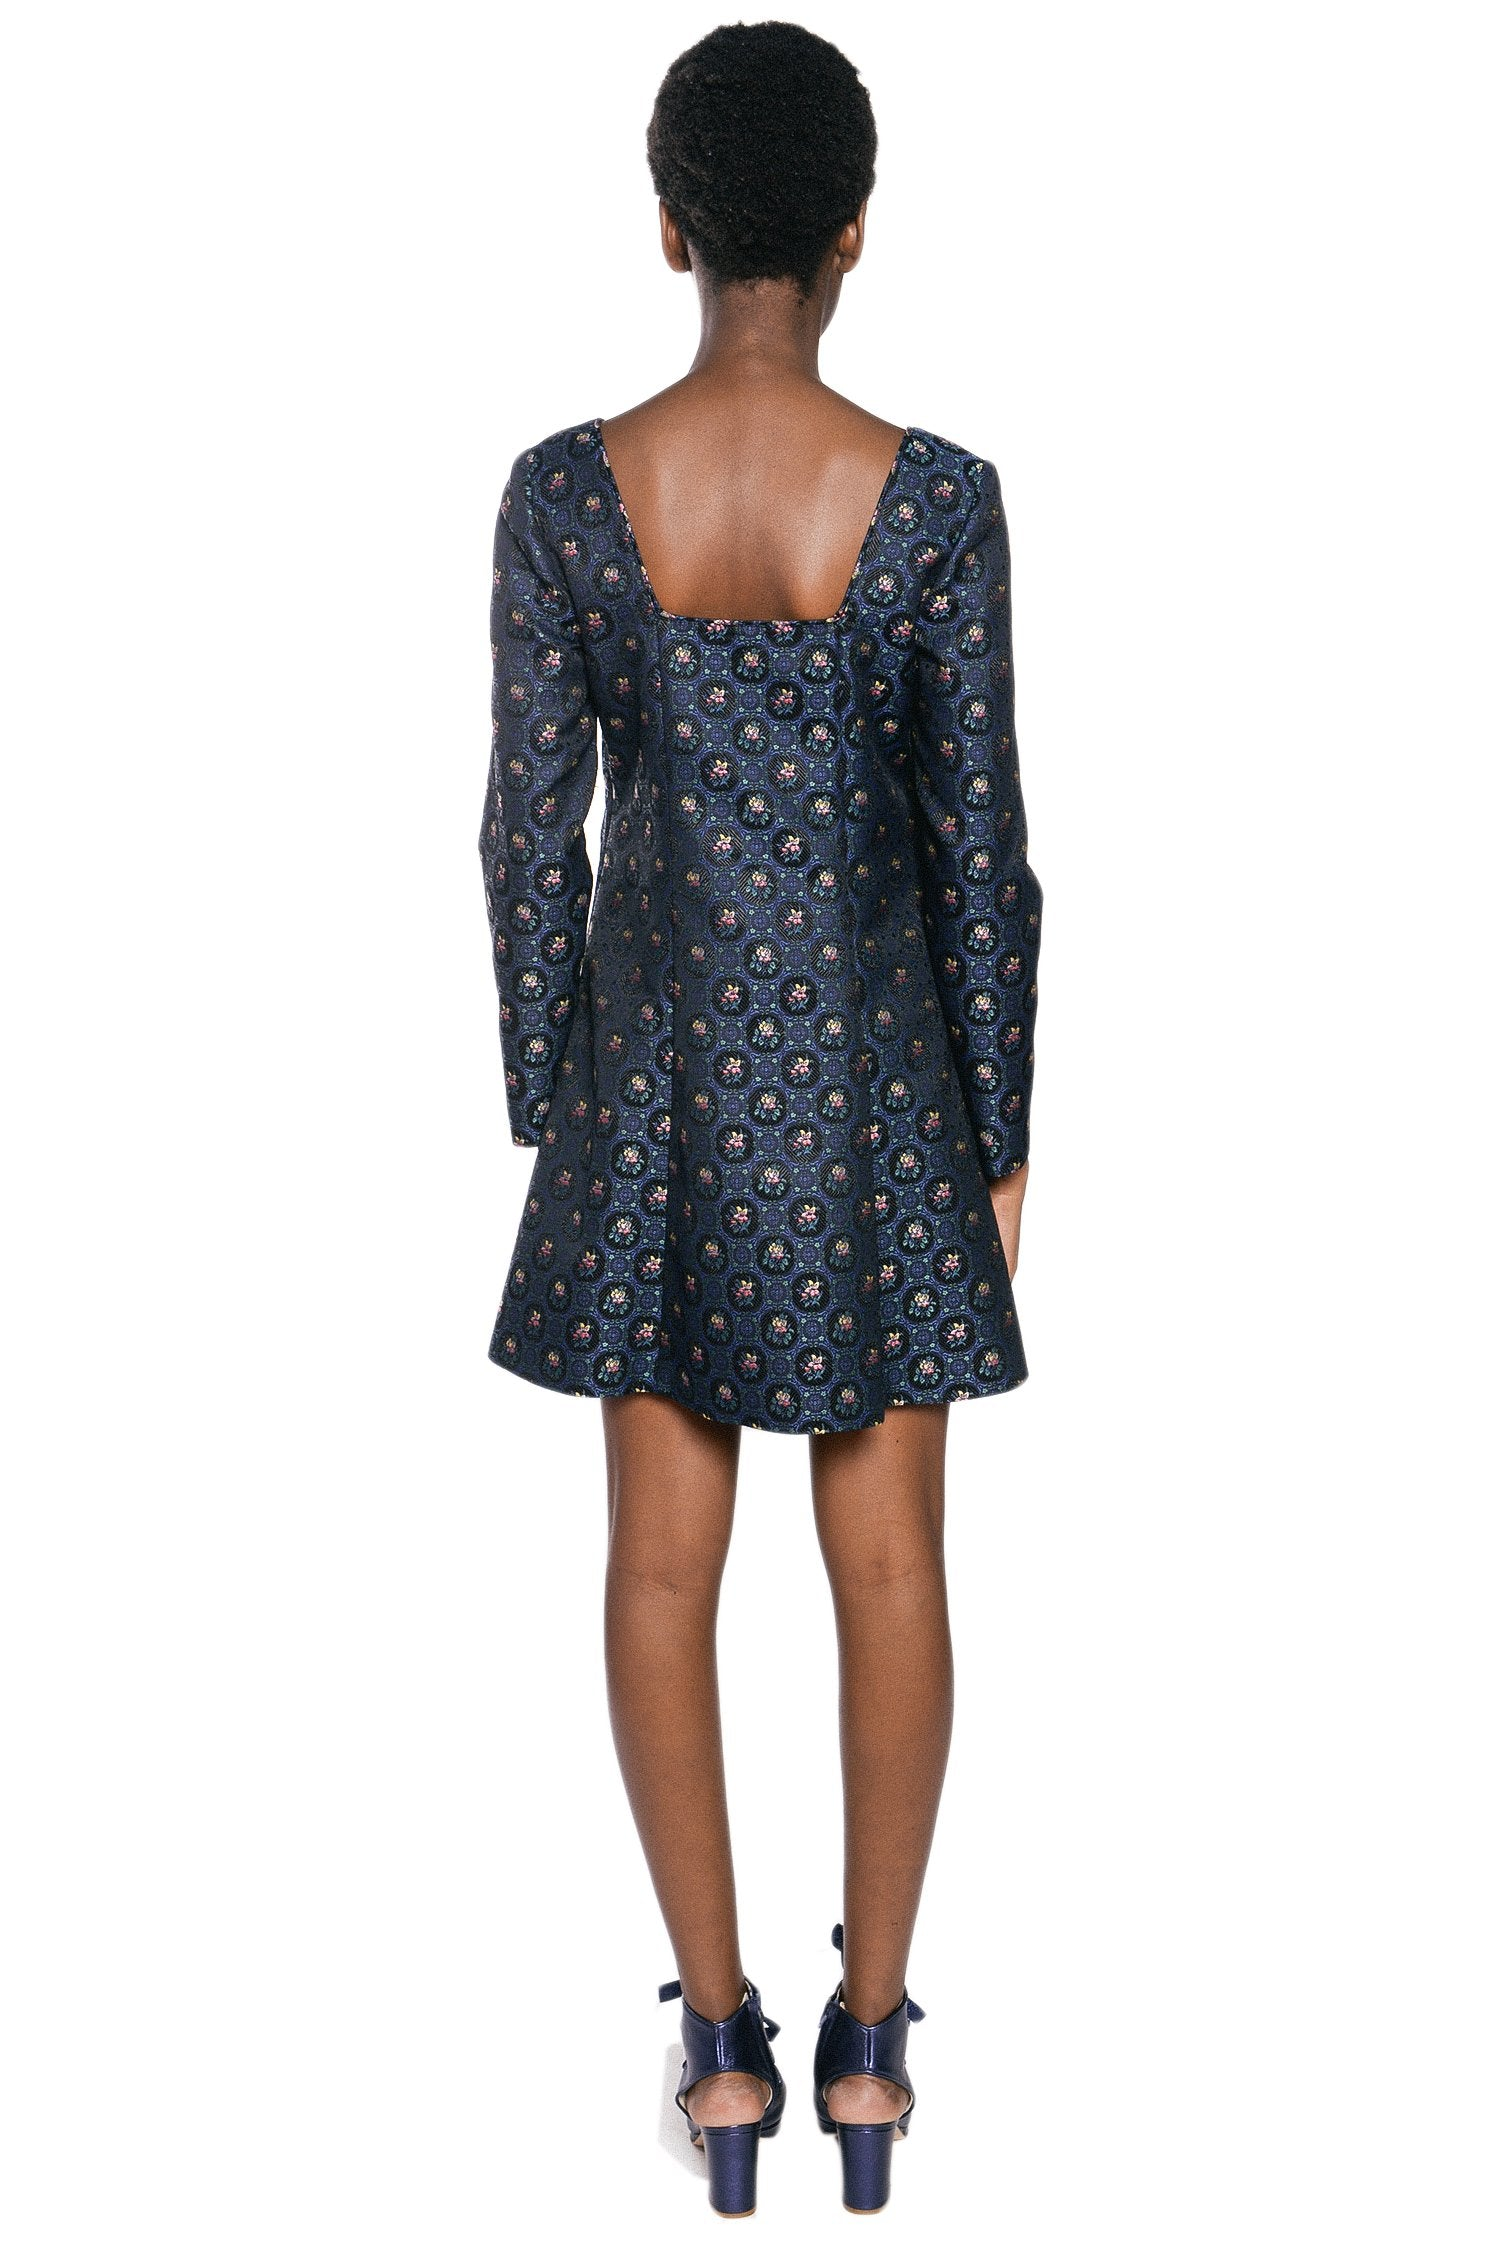 Pressed Petals Jacquard Dress - Anna Sui